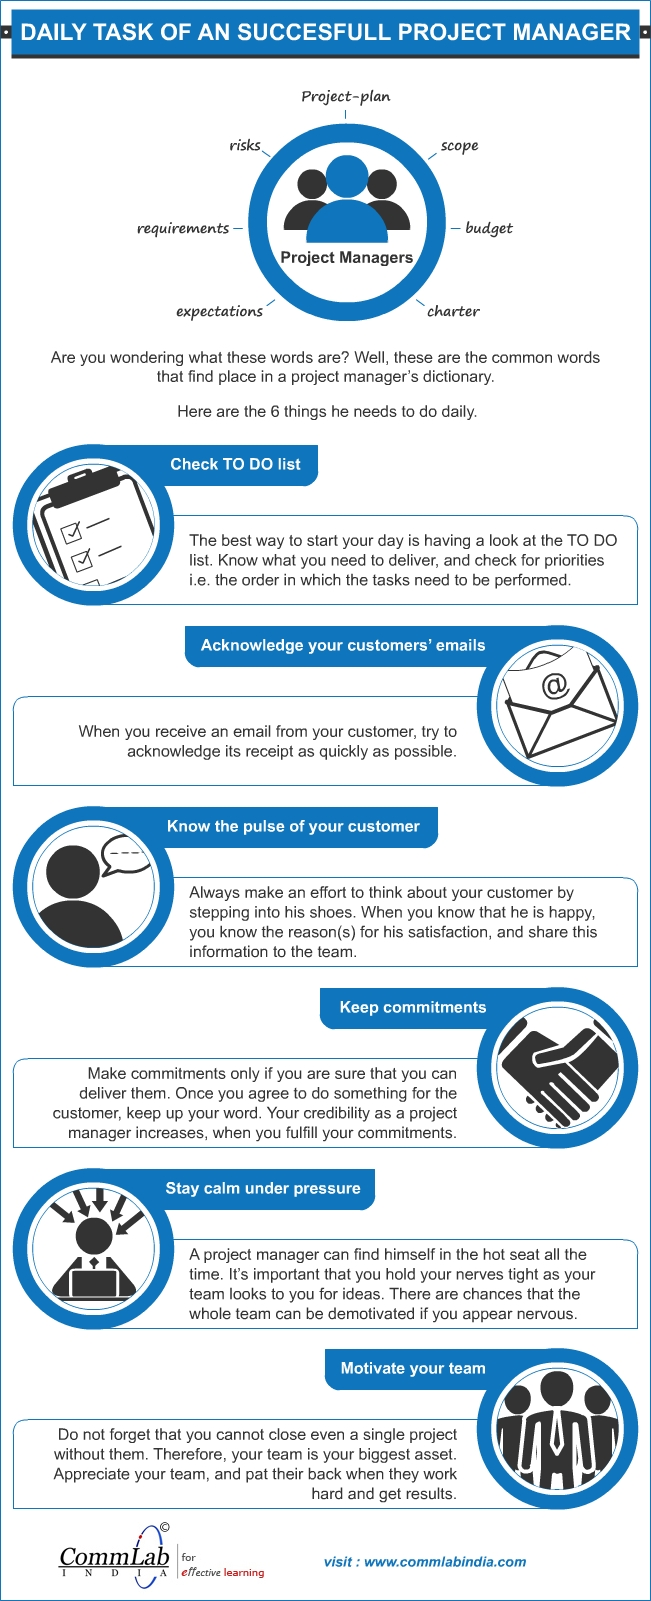 Daily Tasks of a Successful Project Manager – An Info graphic